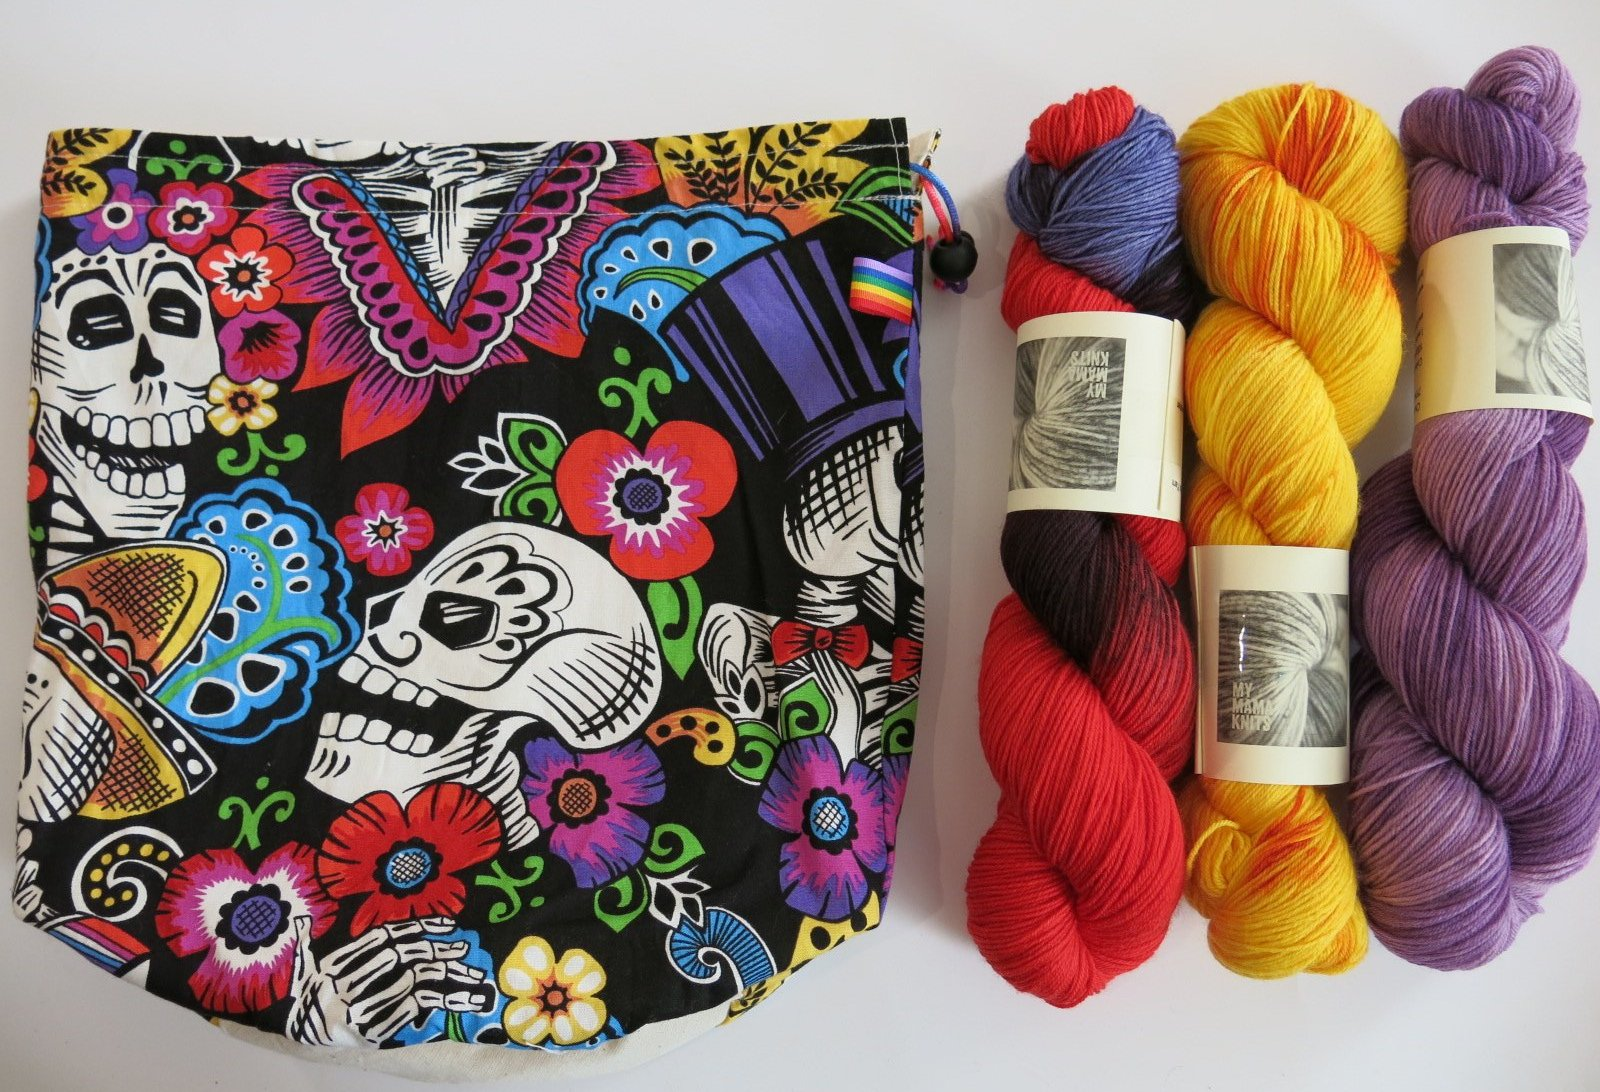 dia de los muertos skeleton project bag for knitting and crochet